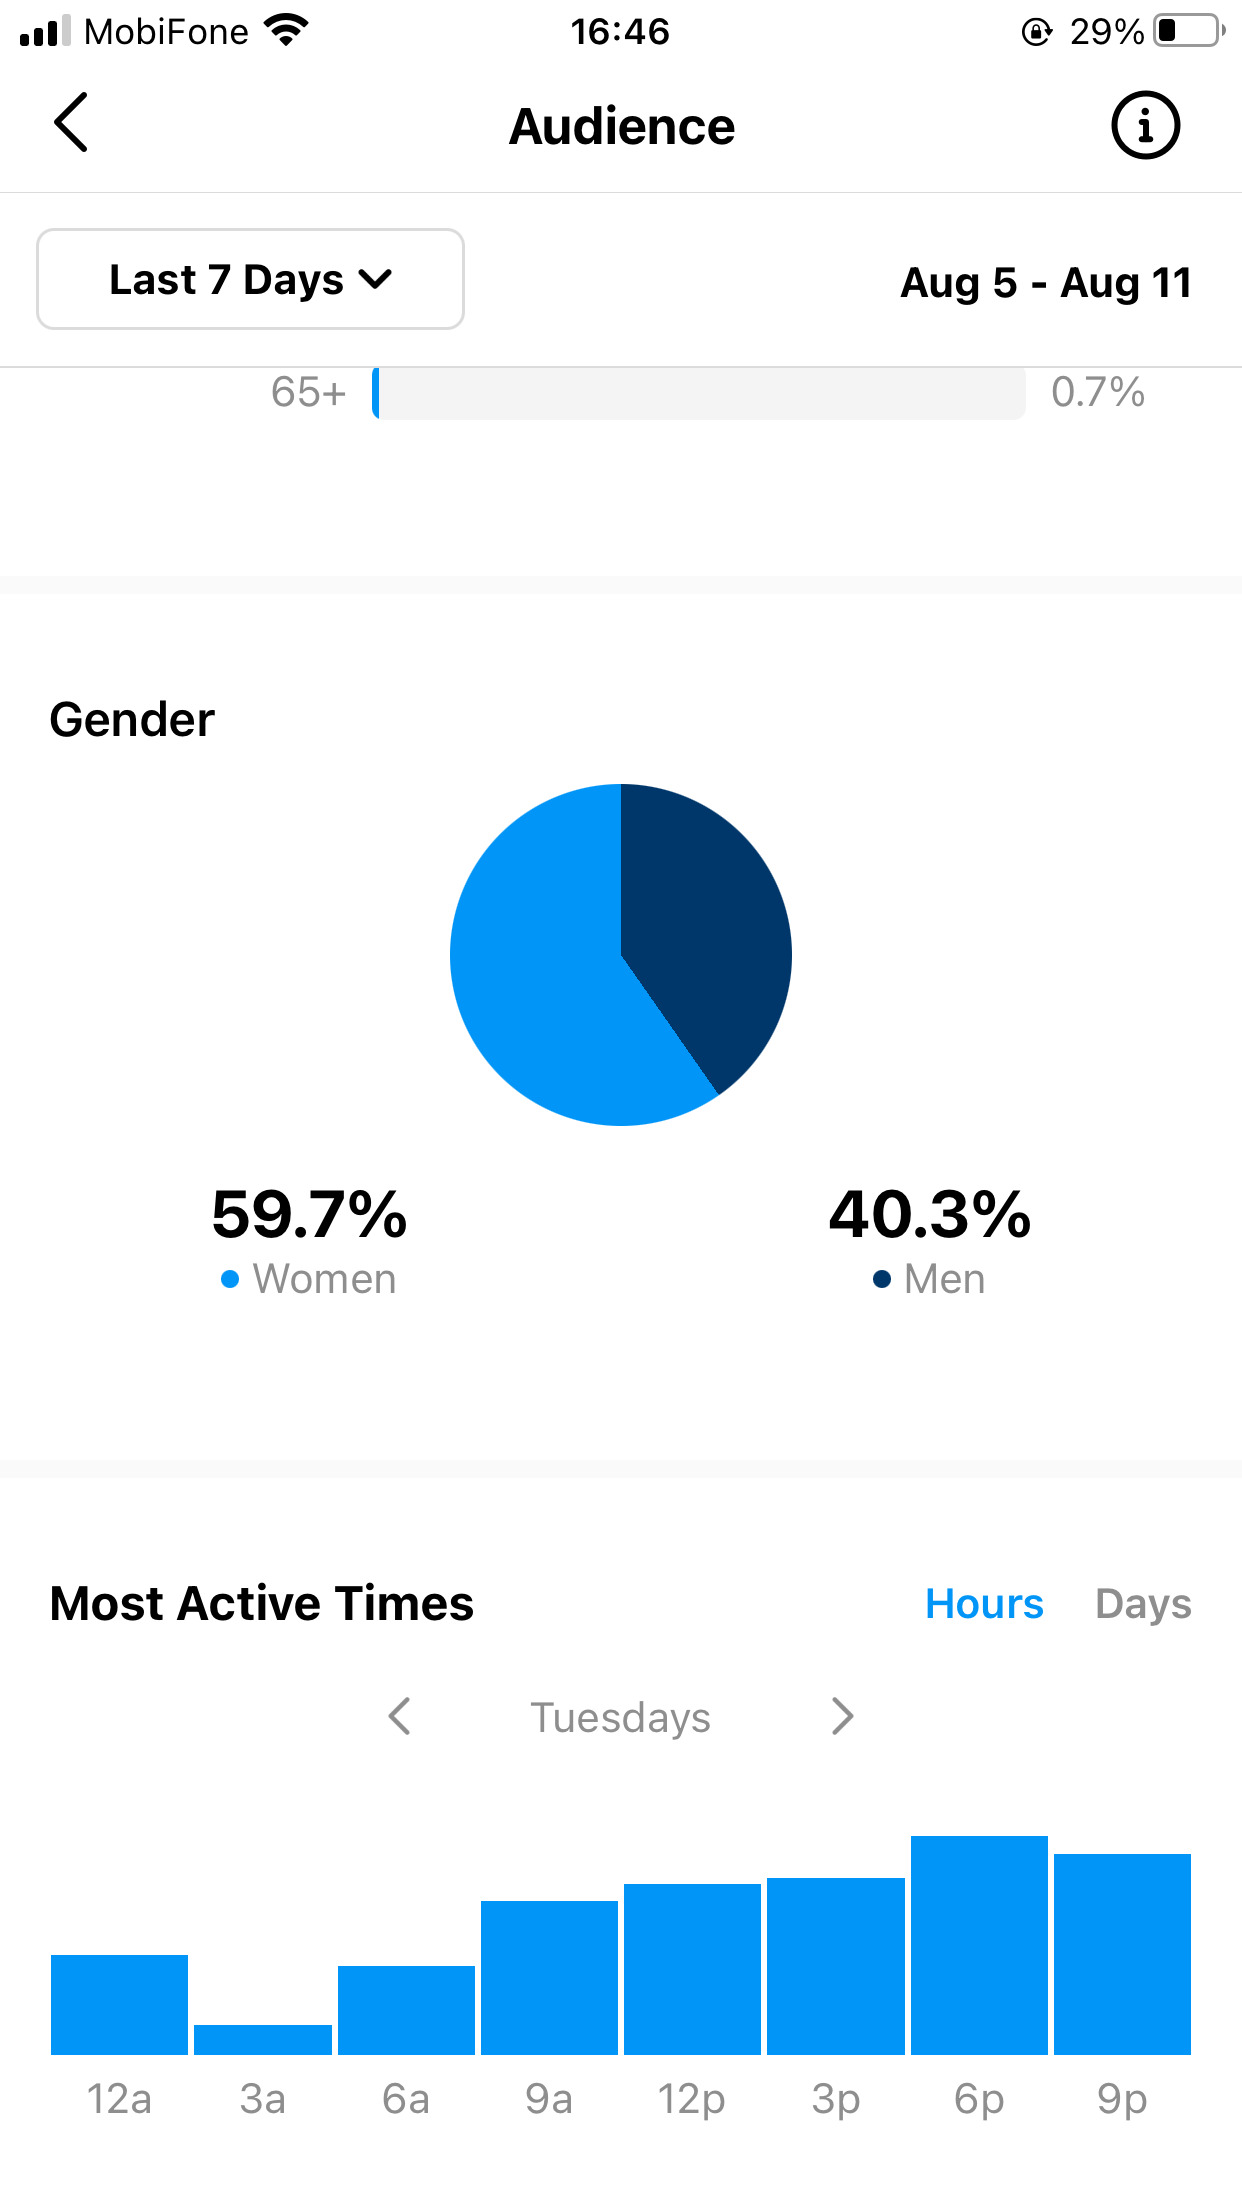 This will give you more insights about your followers' active times